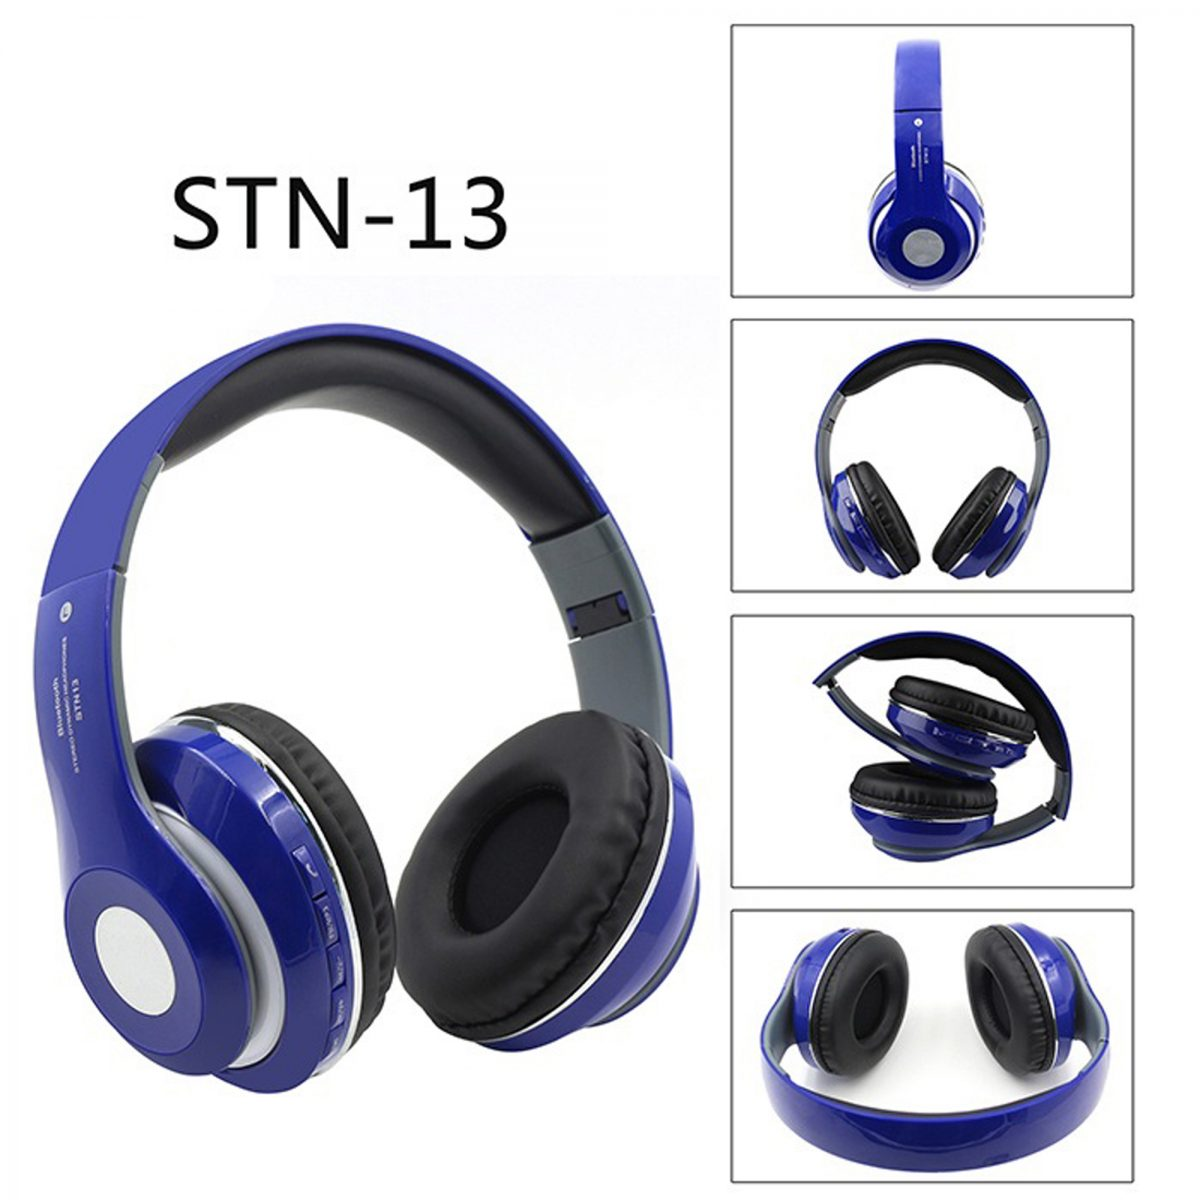 Blue Shinning Stereo Wireless Headphone - STN-13